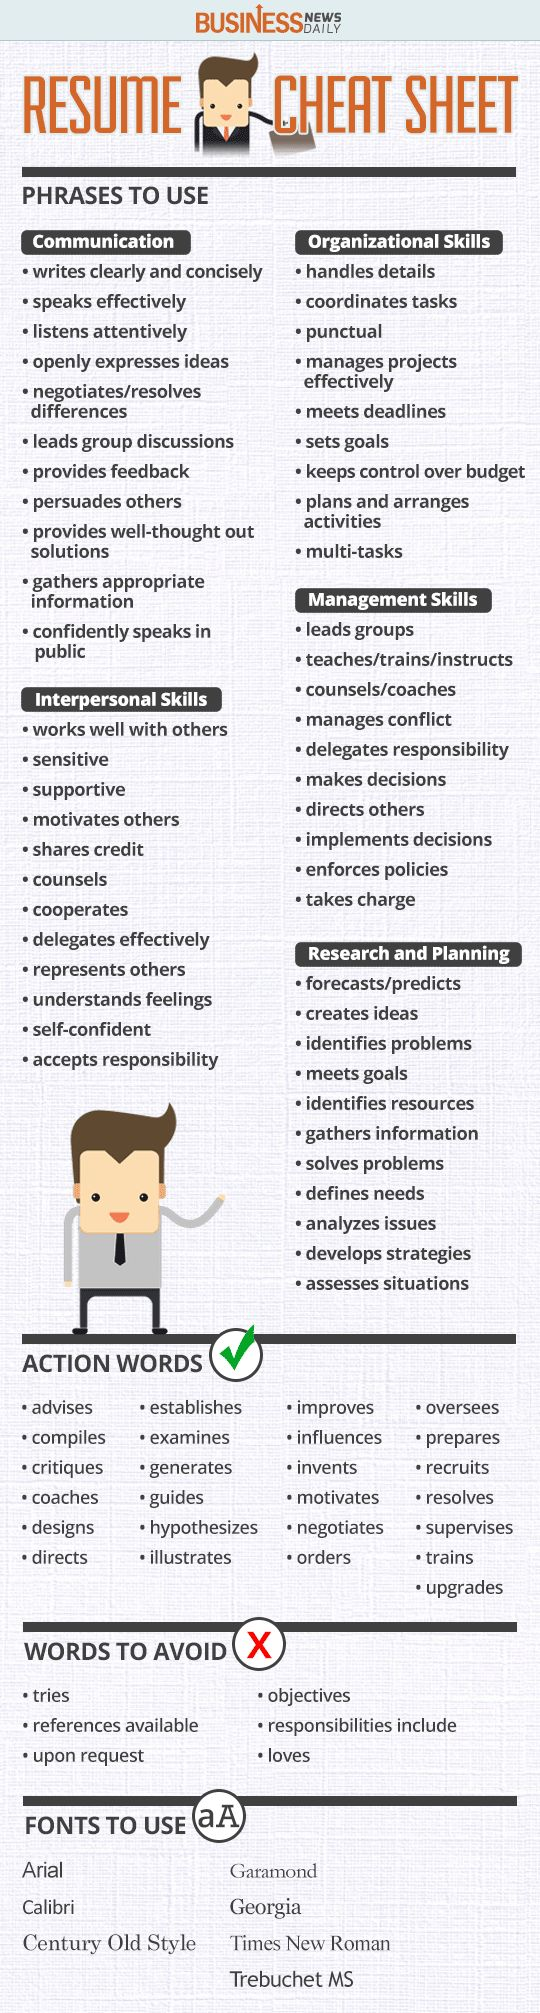 Opposenewapstandardsus  Ravishing  Ideas About Resume On Pinterest  Cv Format Resume  With Interesting Resume Cheat Sheet Infographic Andrews Almost Done With A Complete Unit On Employment Which With Breathtaking Office Work Resume Also Director Level Resume In Addition Bullet Points For Resume And Nonprofit Resume As Well As Good Resume Profile Examples Additionally Damn Good Resume From Pinterestcom With Opposenewapstandardsus  Interesting  Ideas About Resume On Pinterest  Cv Format Resume  With Breathtaking Resume Cheat Sheet Infographic Andrews Almost Done With A Complete Unit On Employment Which And Ravishing Office Work Resume Also Director Level Resume In Addition Bullet Points For Resume From Pinterestcom